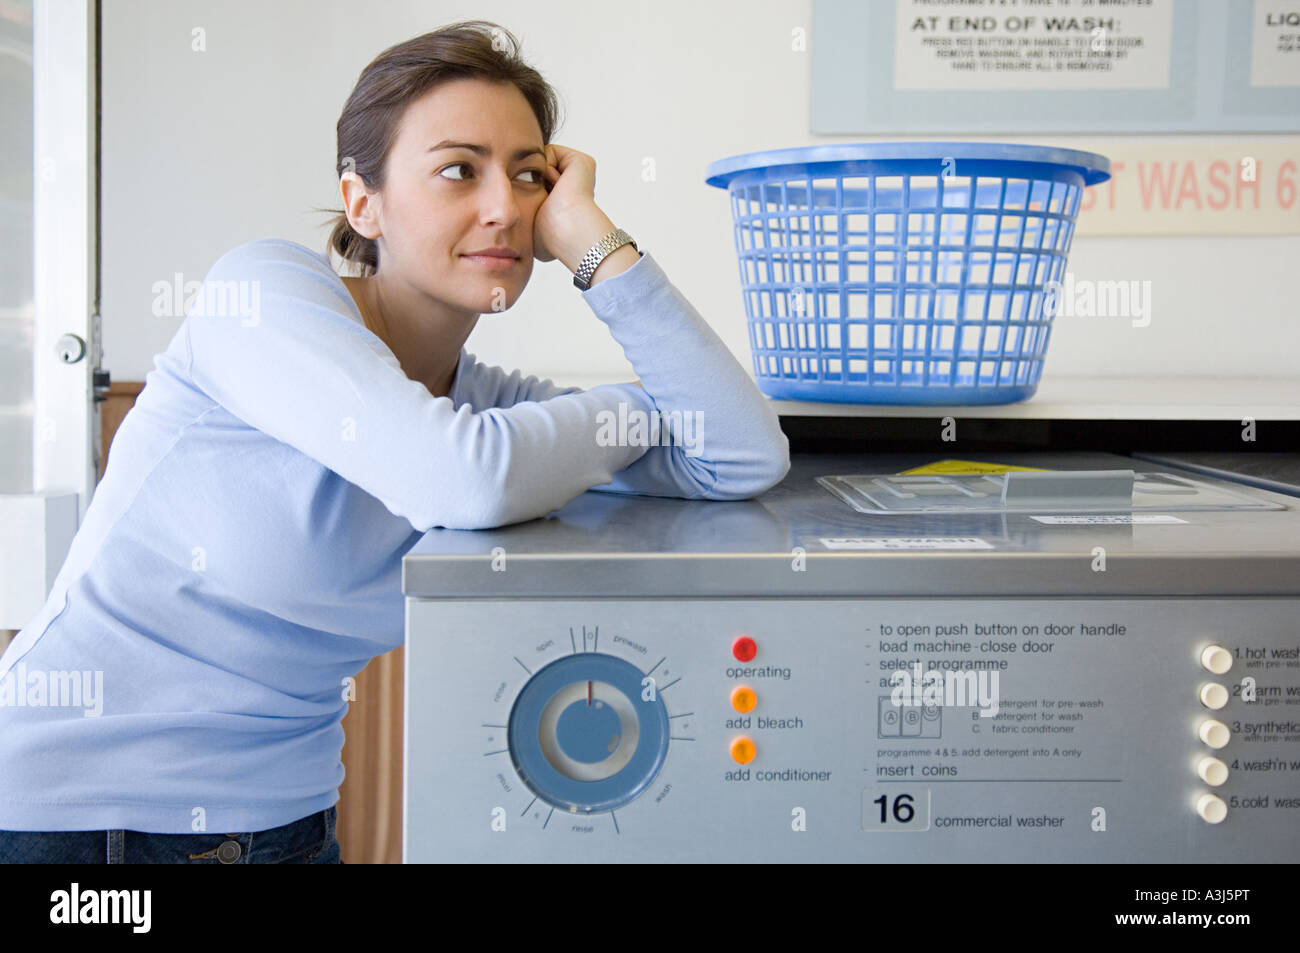 Woman in a laundrette - Stock Image